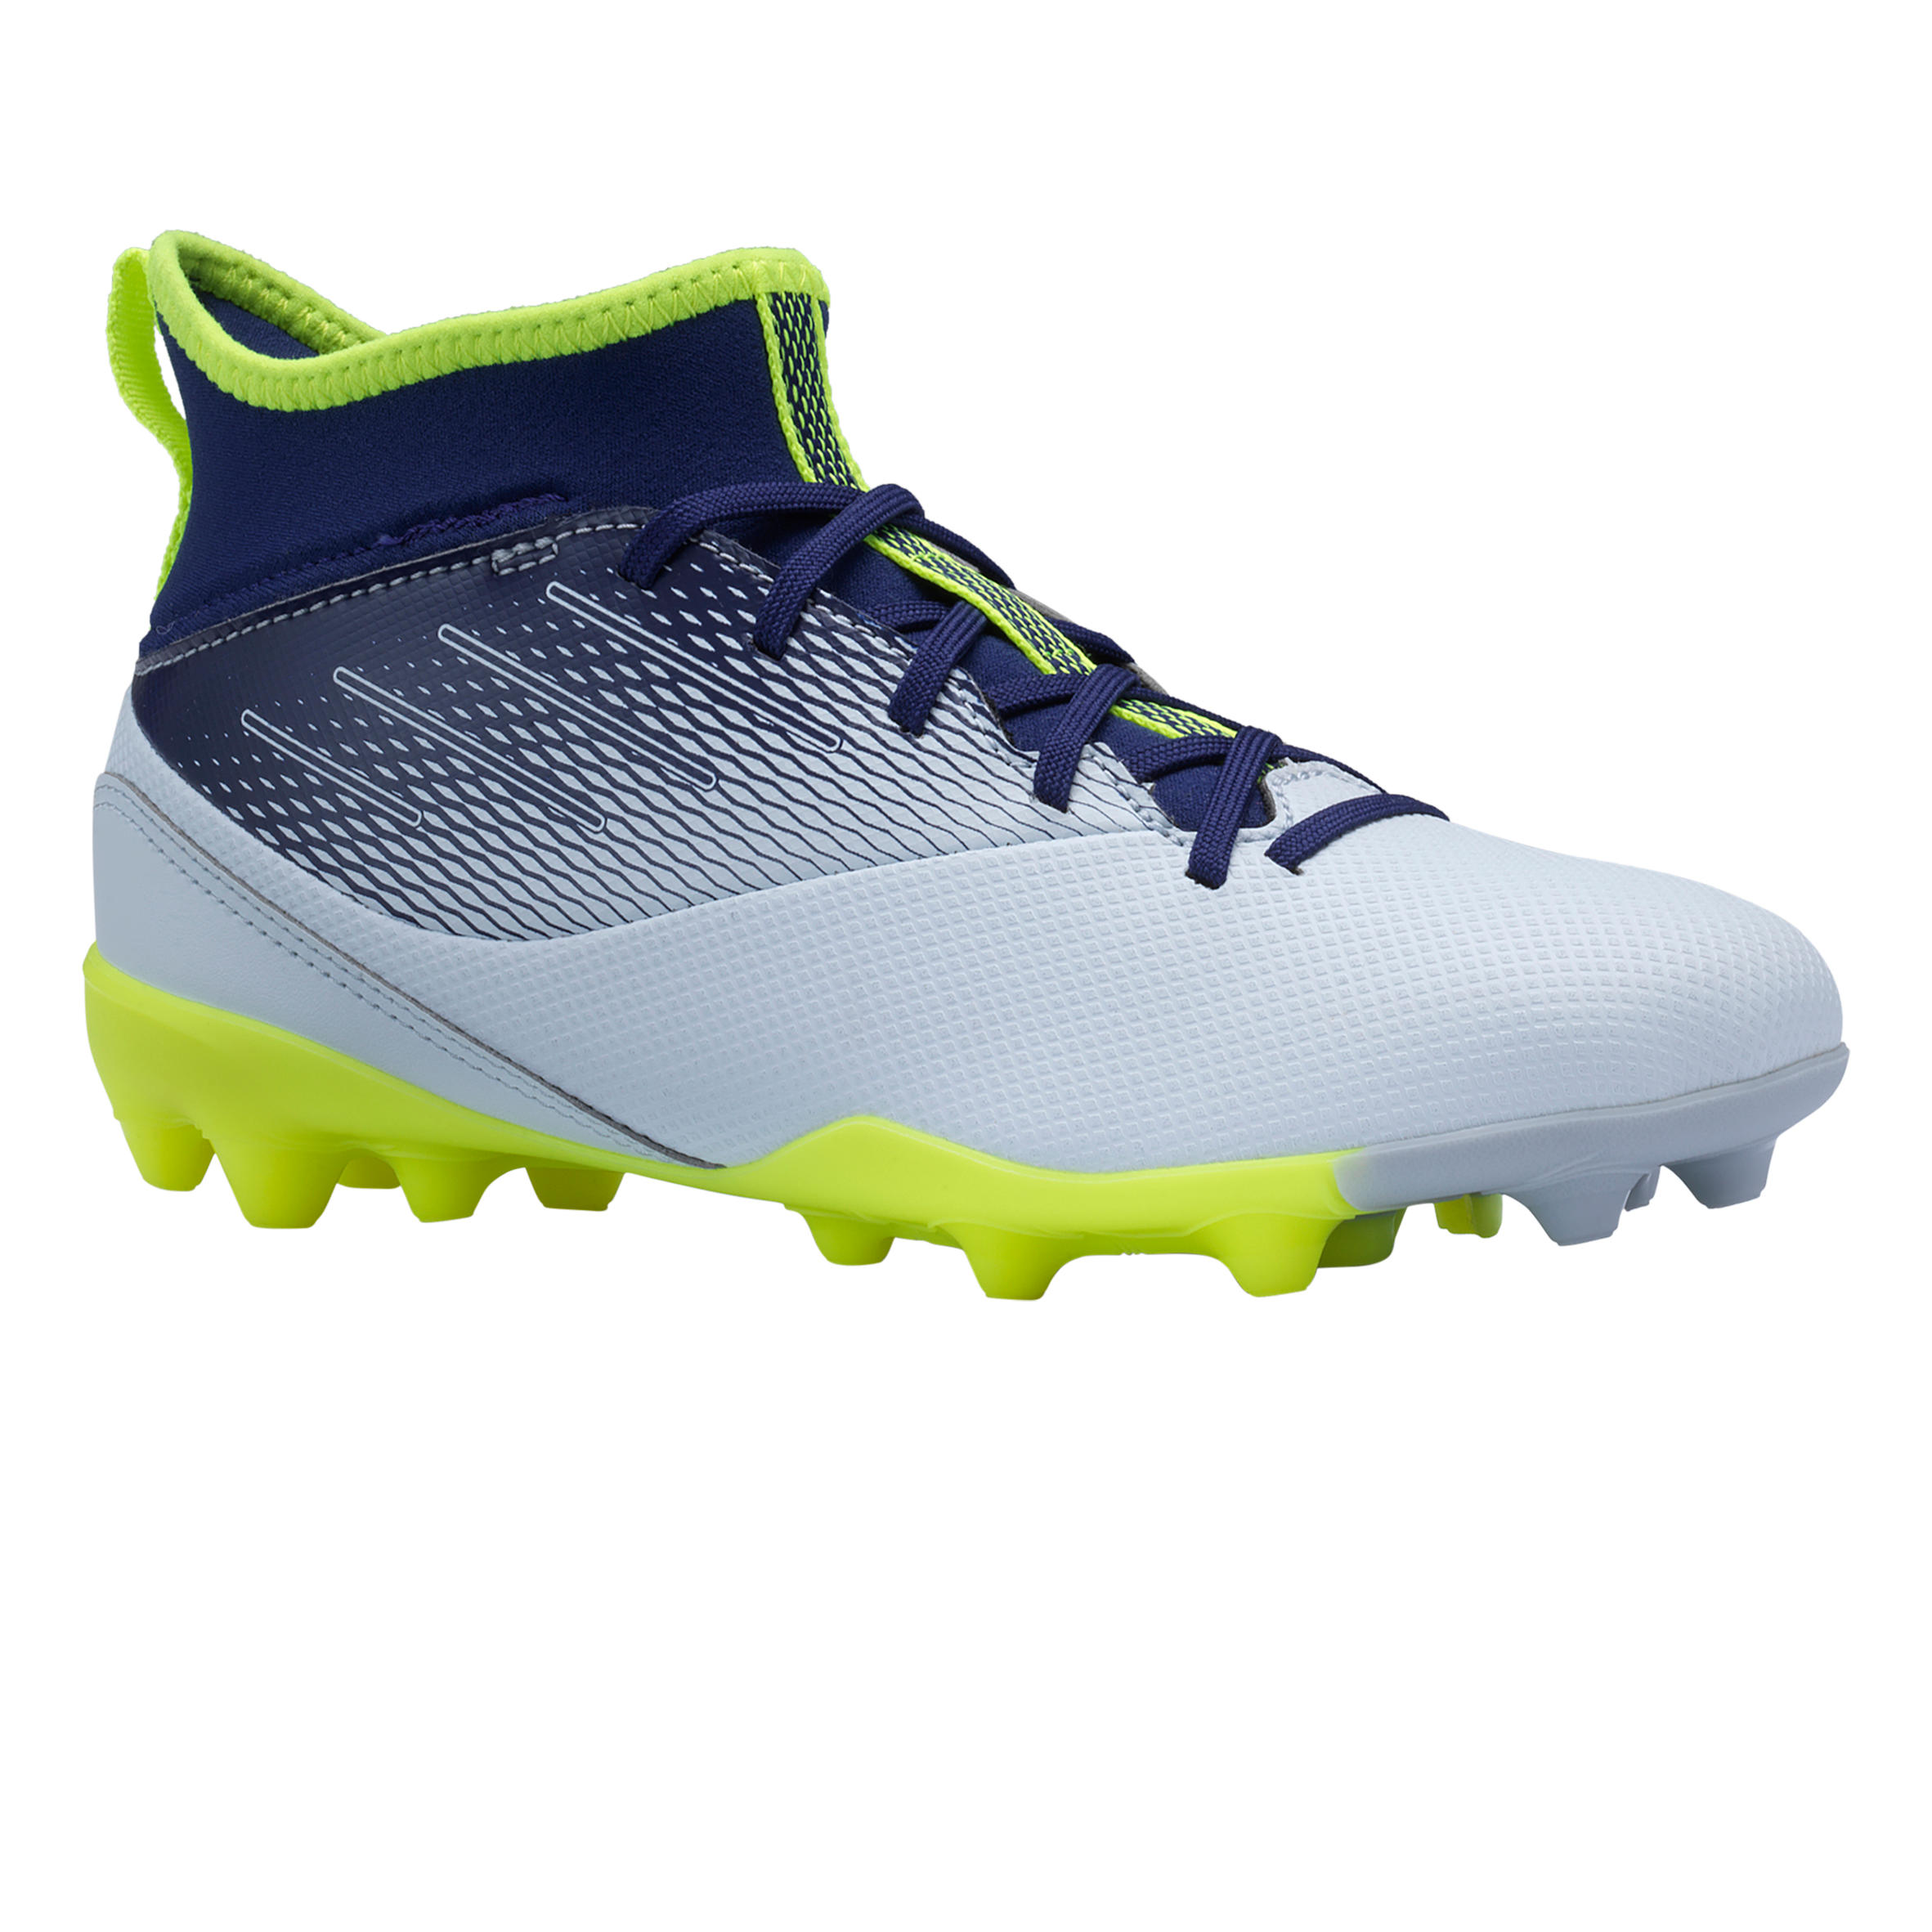 Buy Football shoes for kids'-Agility500